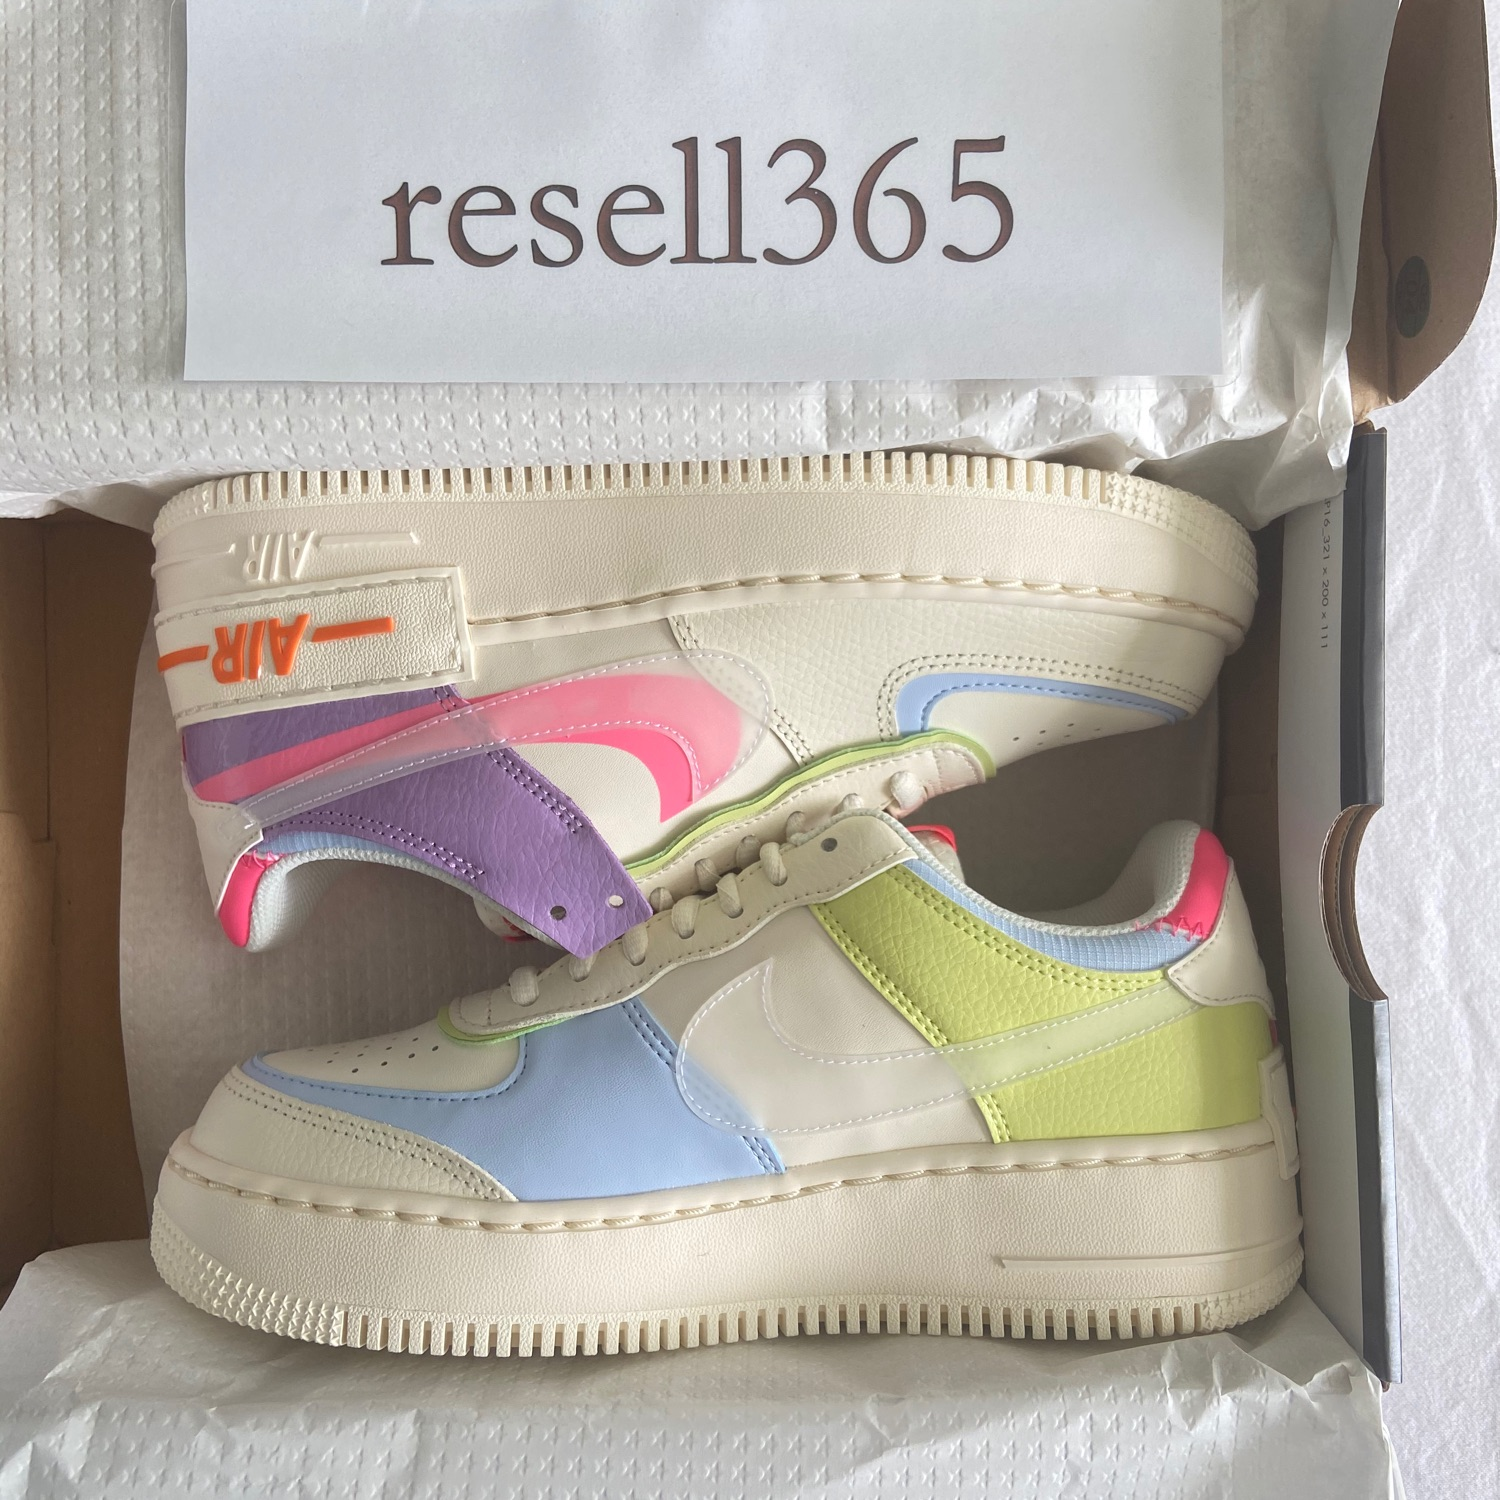 Air Force 1 Shadow Beige Pale Ivory Us 8 Eu 39 Кроссовки nike air force 1 betrue. air force 1 shadow beige pale ivory us 8 eu 39